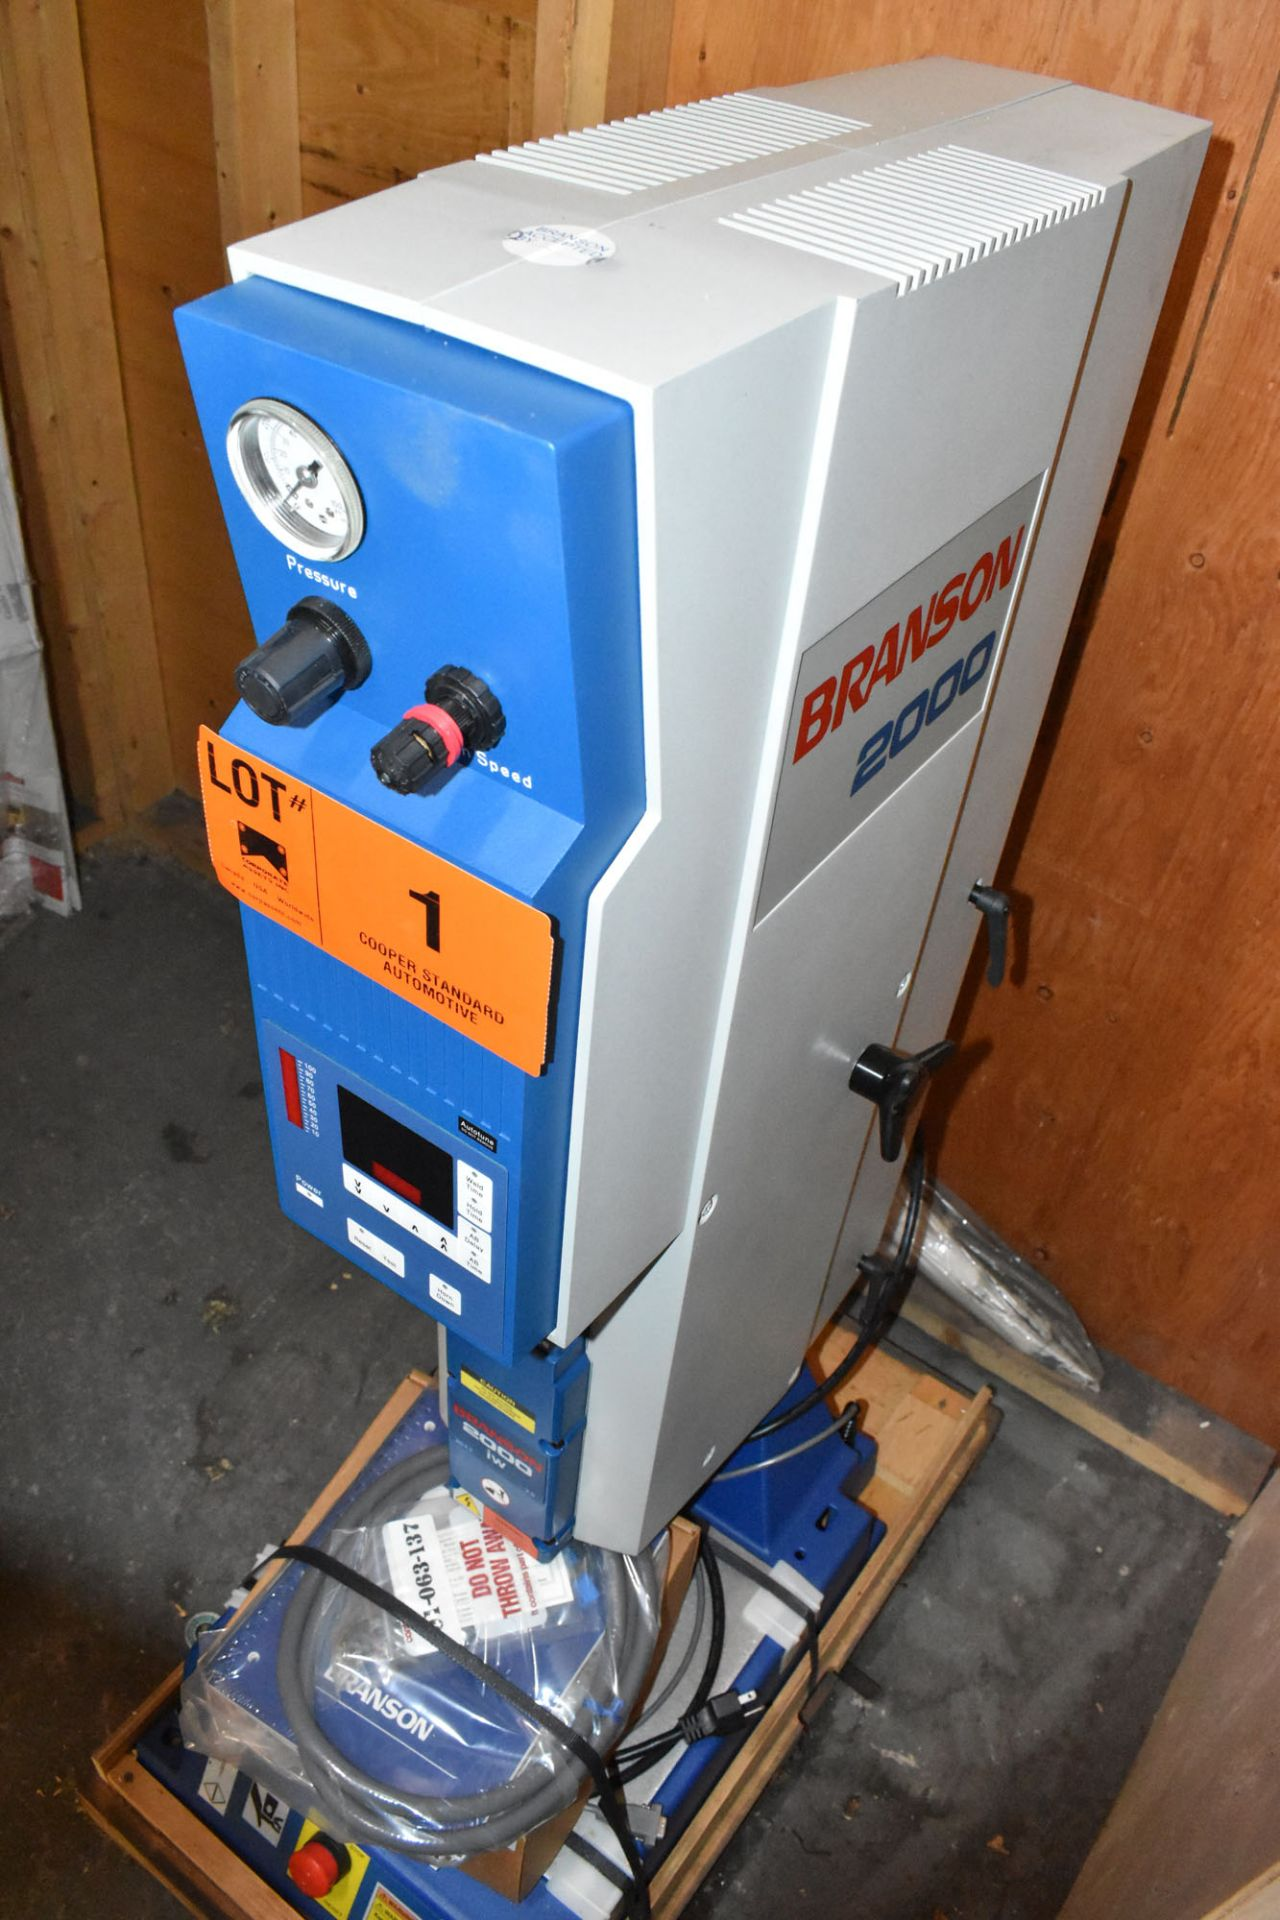 BRANSON (2006) 2000IW INTEGRATED ULTRASONIC PLASTIC WELDER WITH 1200W, S/N: WLA06046695 (BRAND - Image 3 of 6